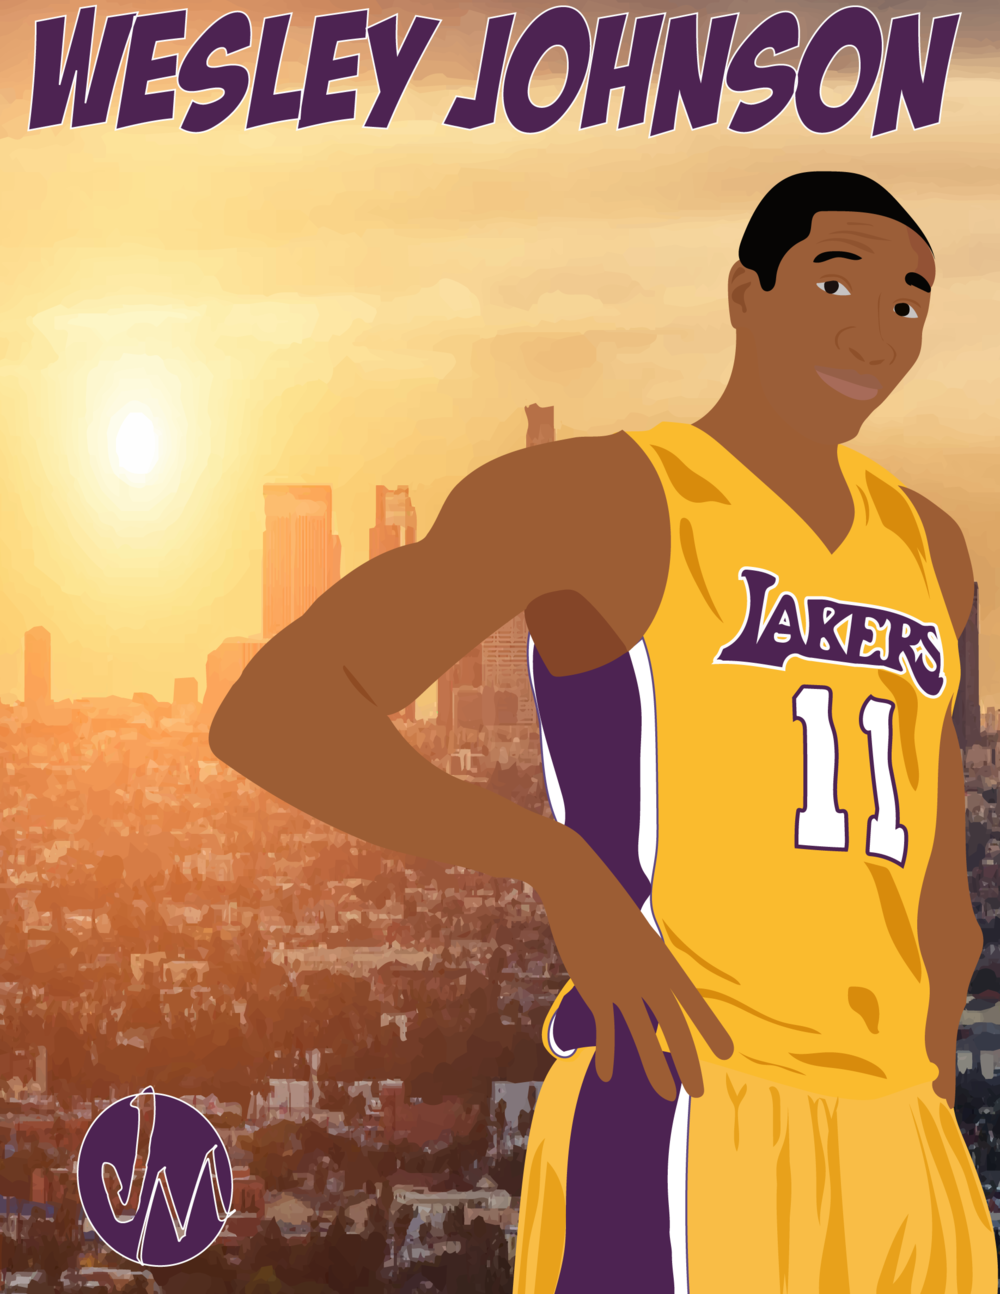 Wesley Johnson Portrait